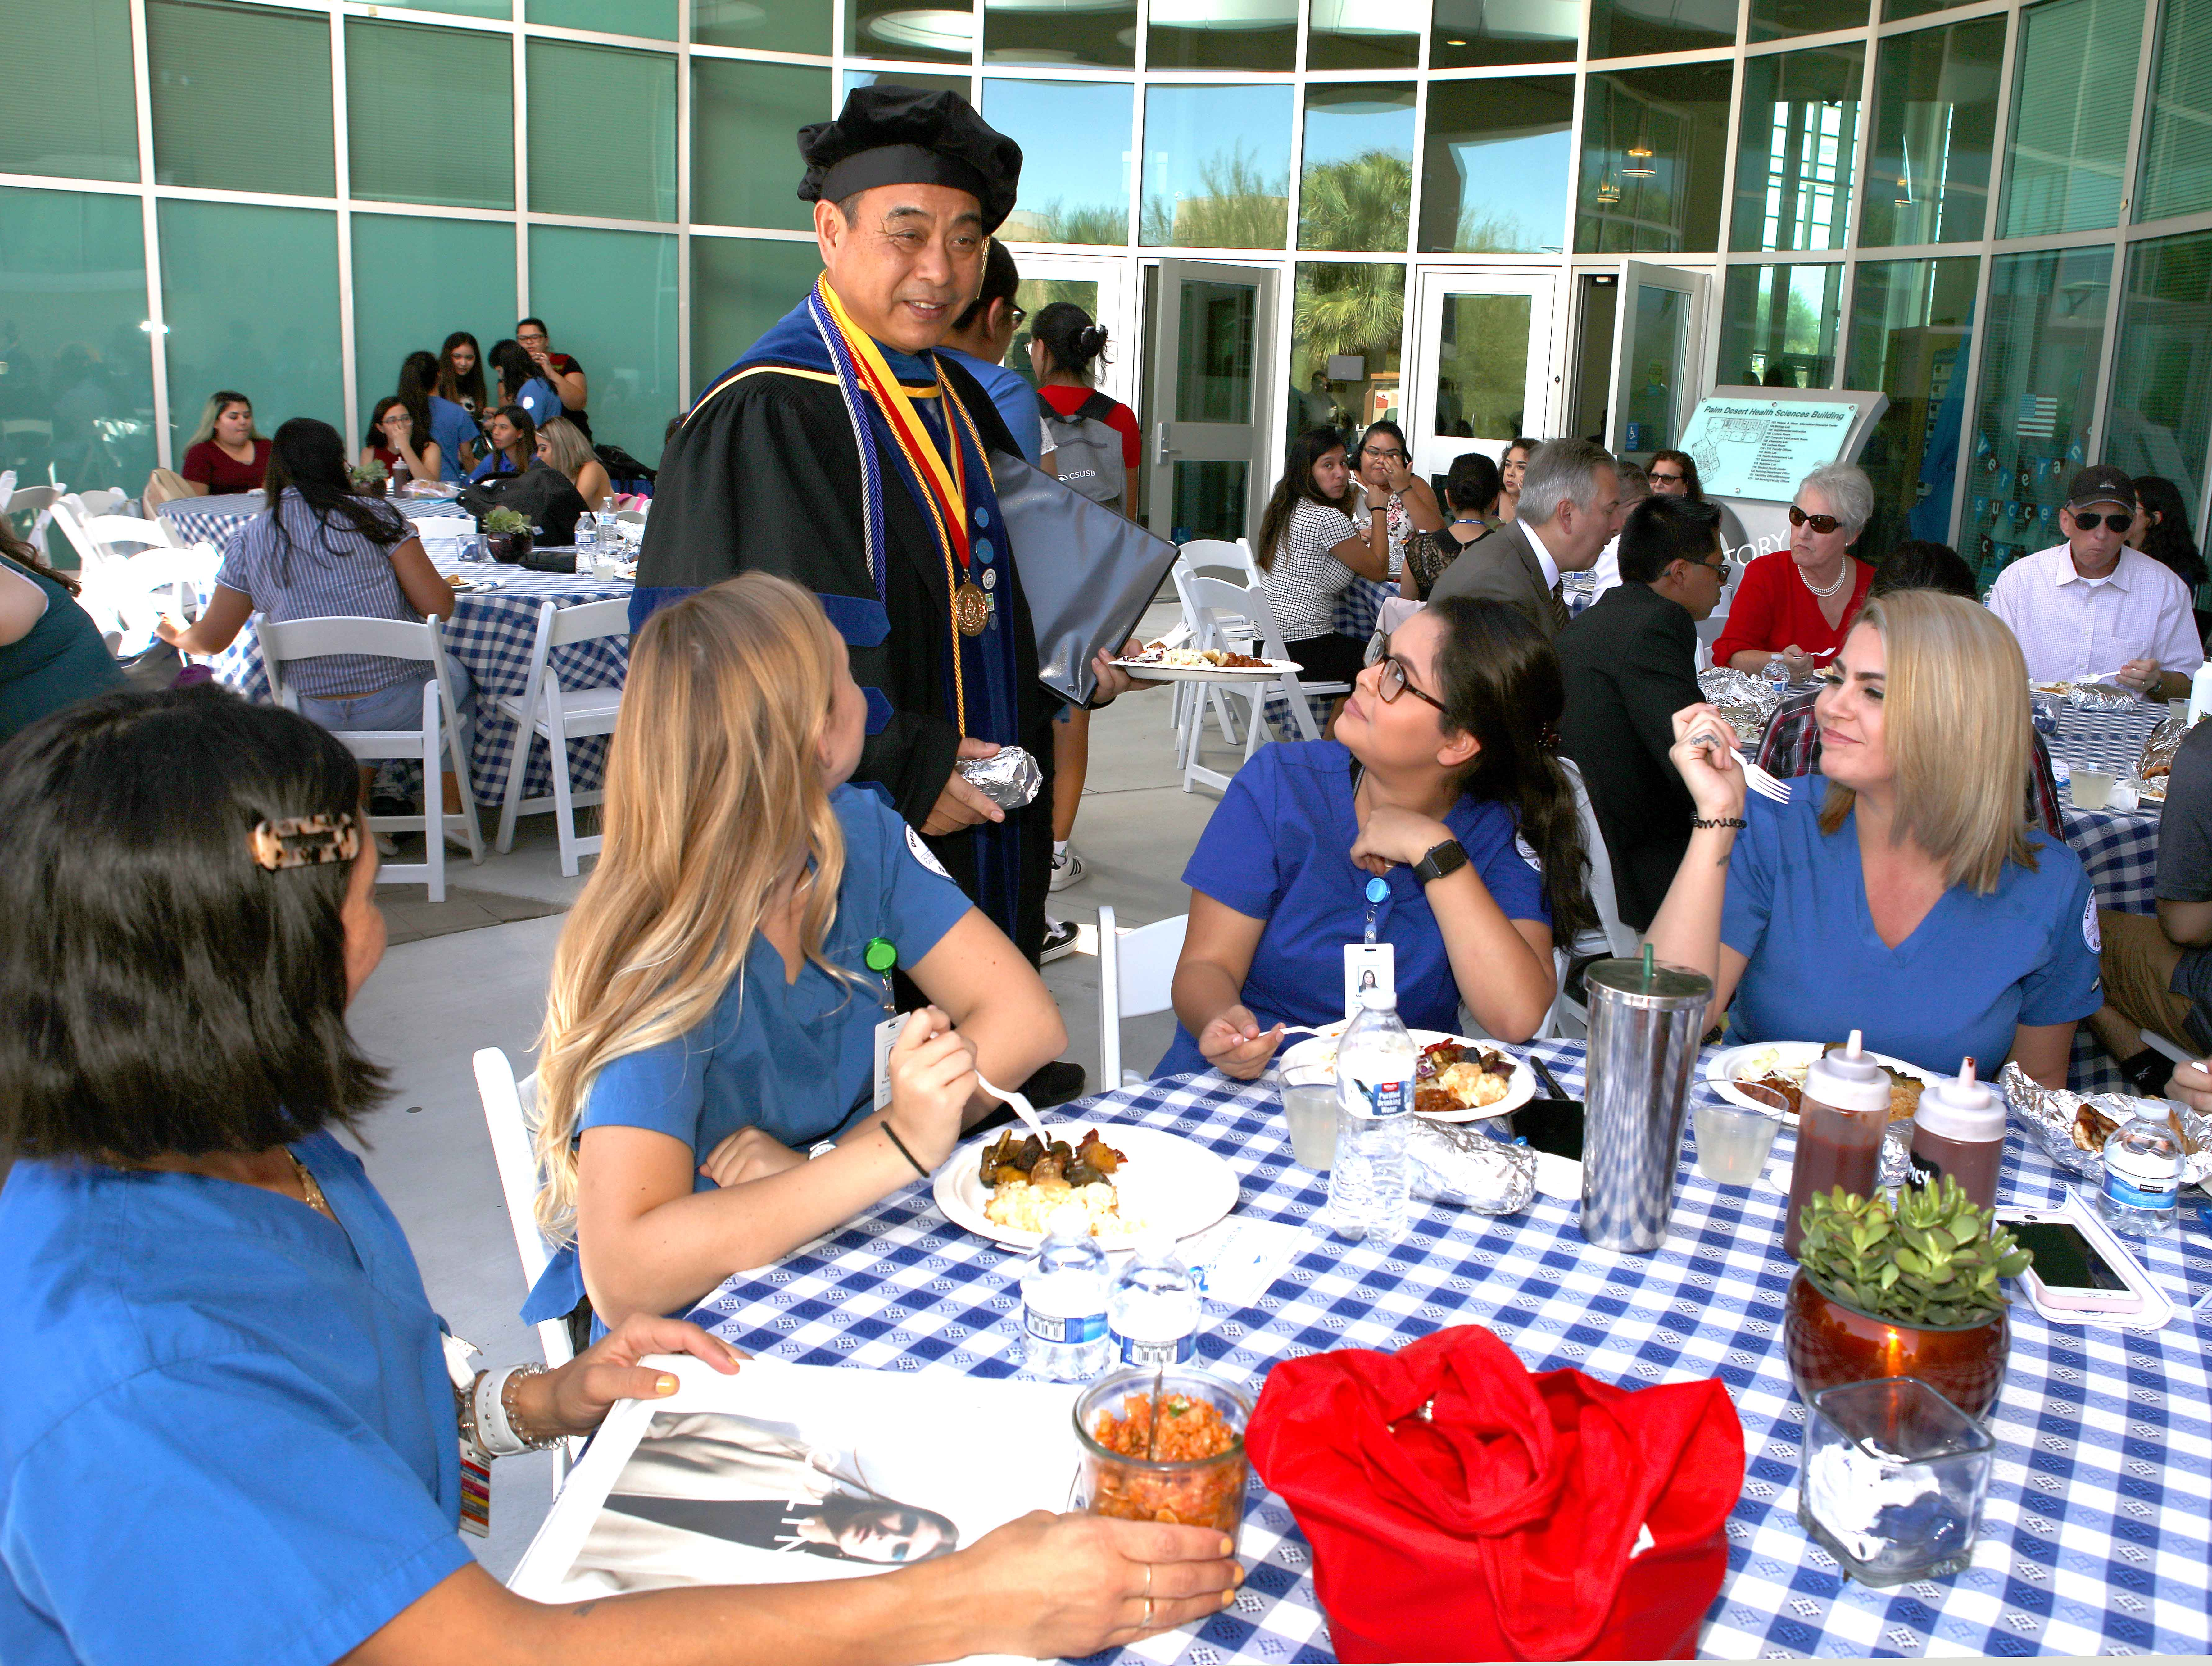 Jake Zhu begins his first full academic year as dean of the Palm Desert Campus.